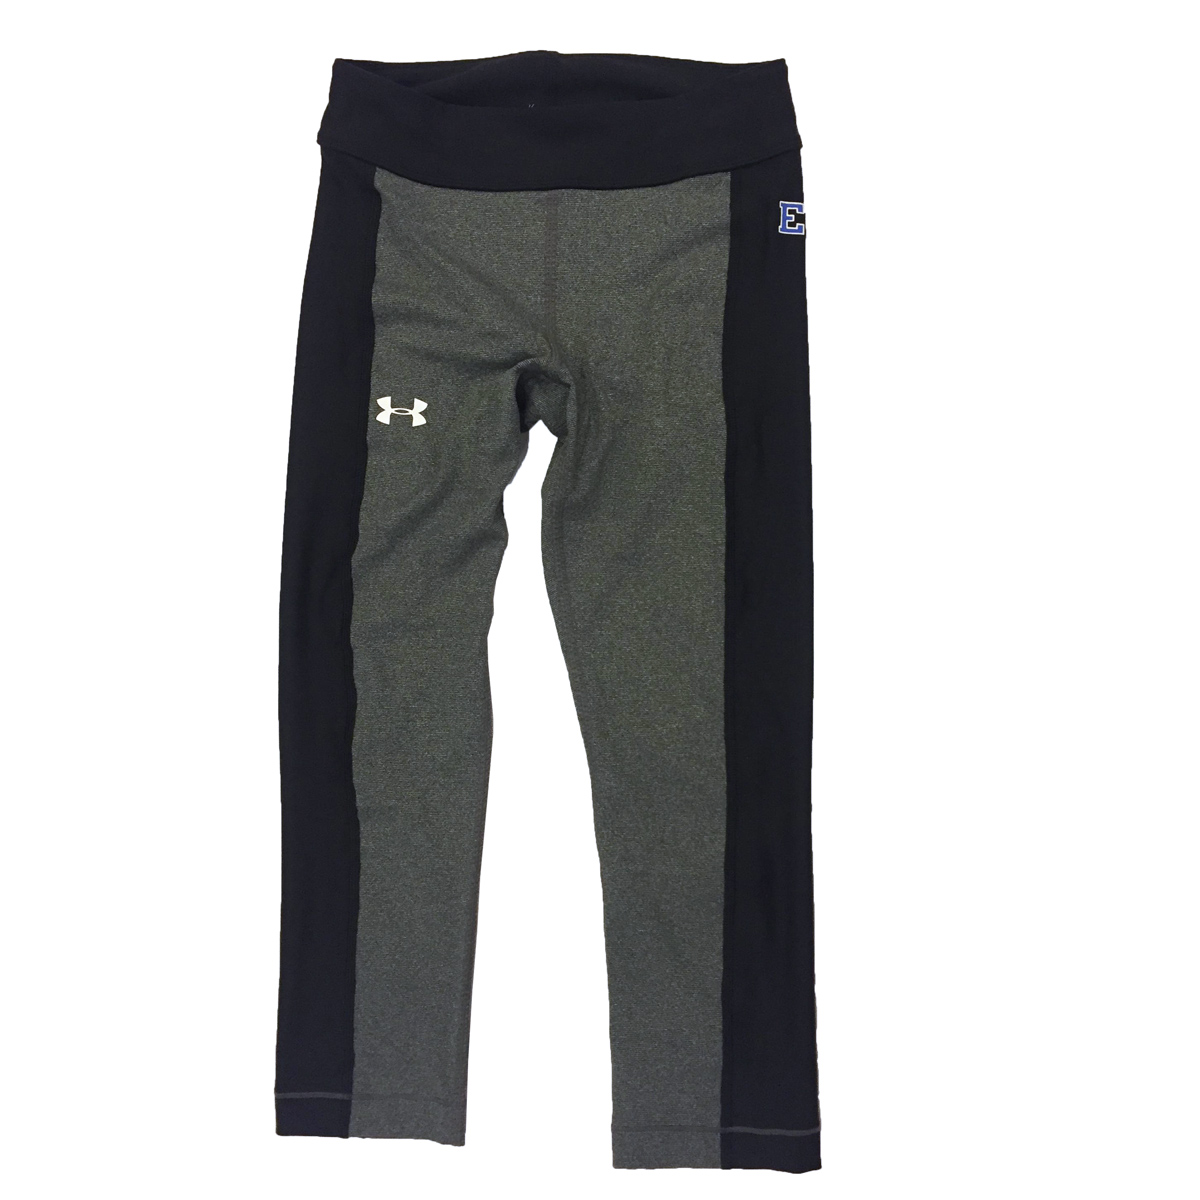 Image For Women's EIU Under Armour Capri Leggings